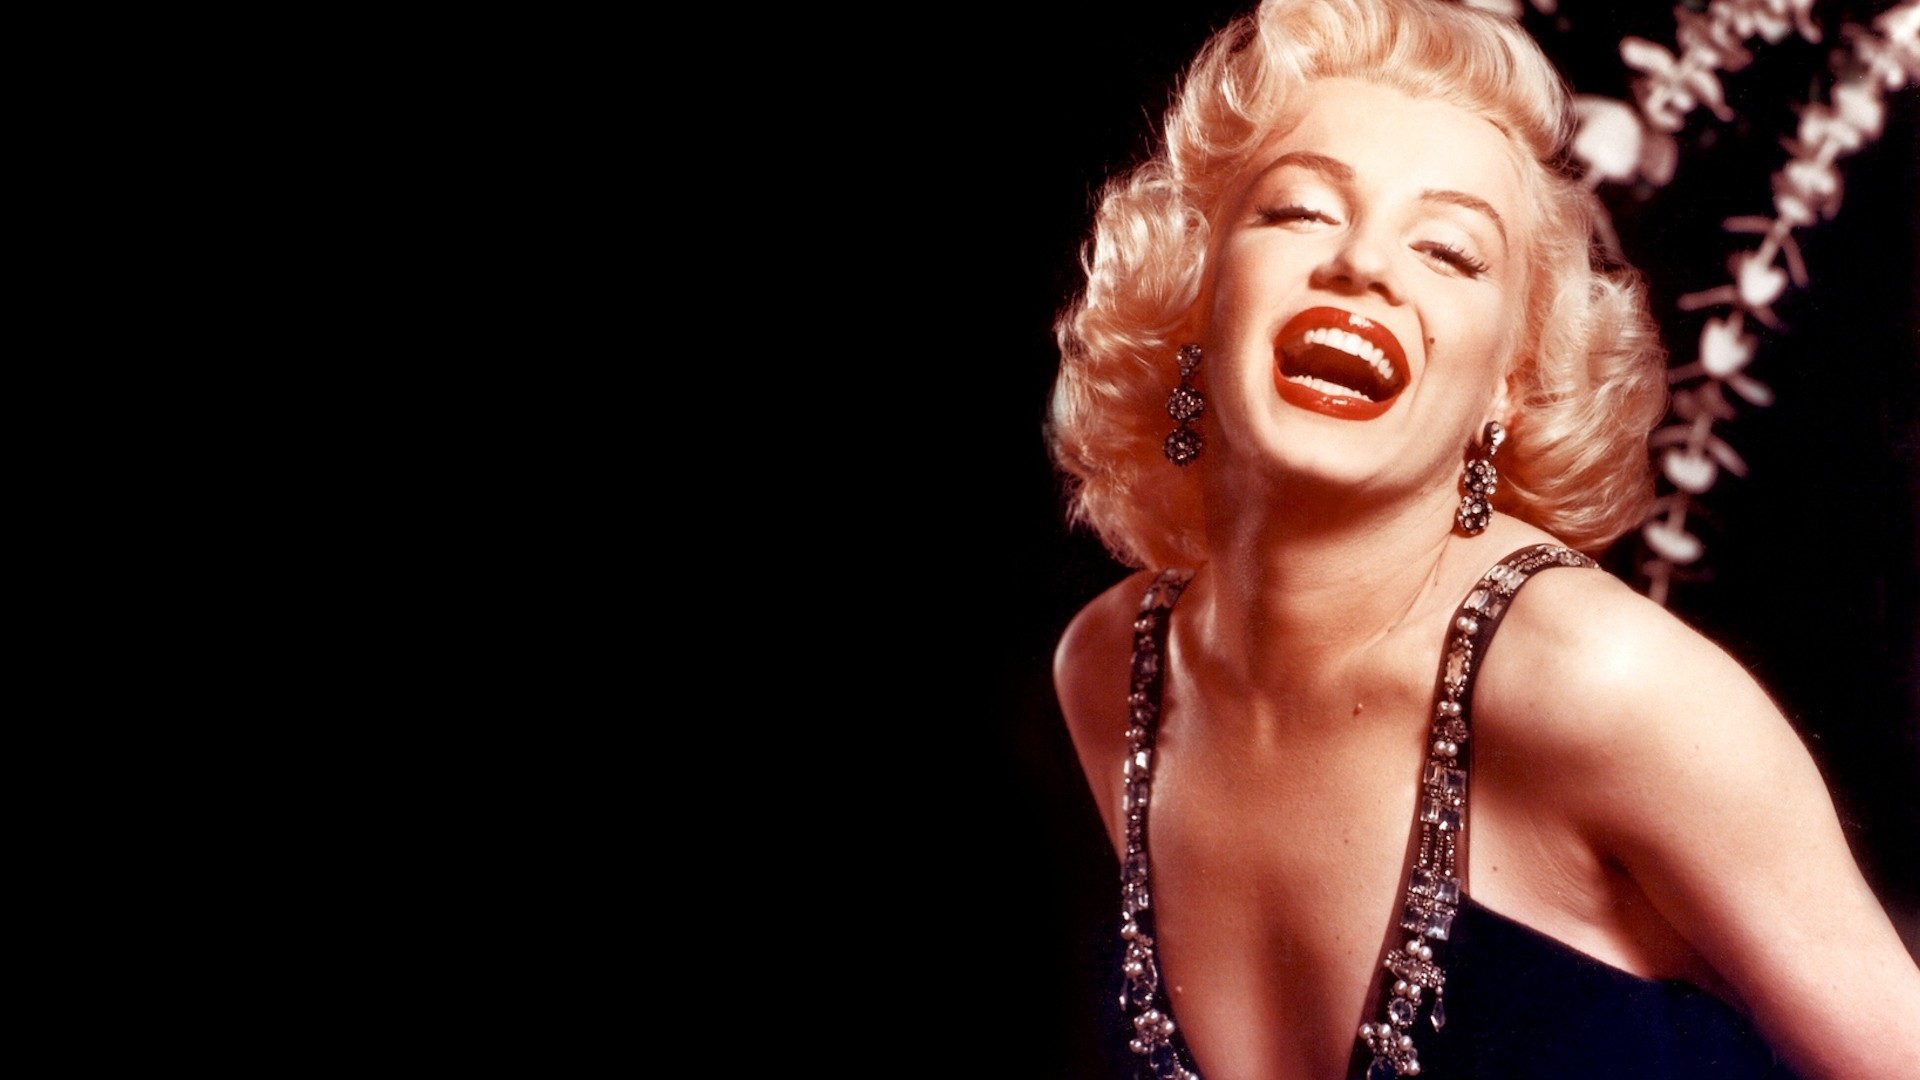 cute marilyn monroe hd pictures,photos & images(high quality) - all